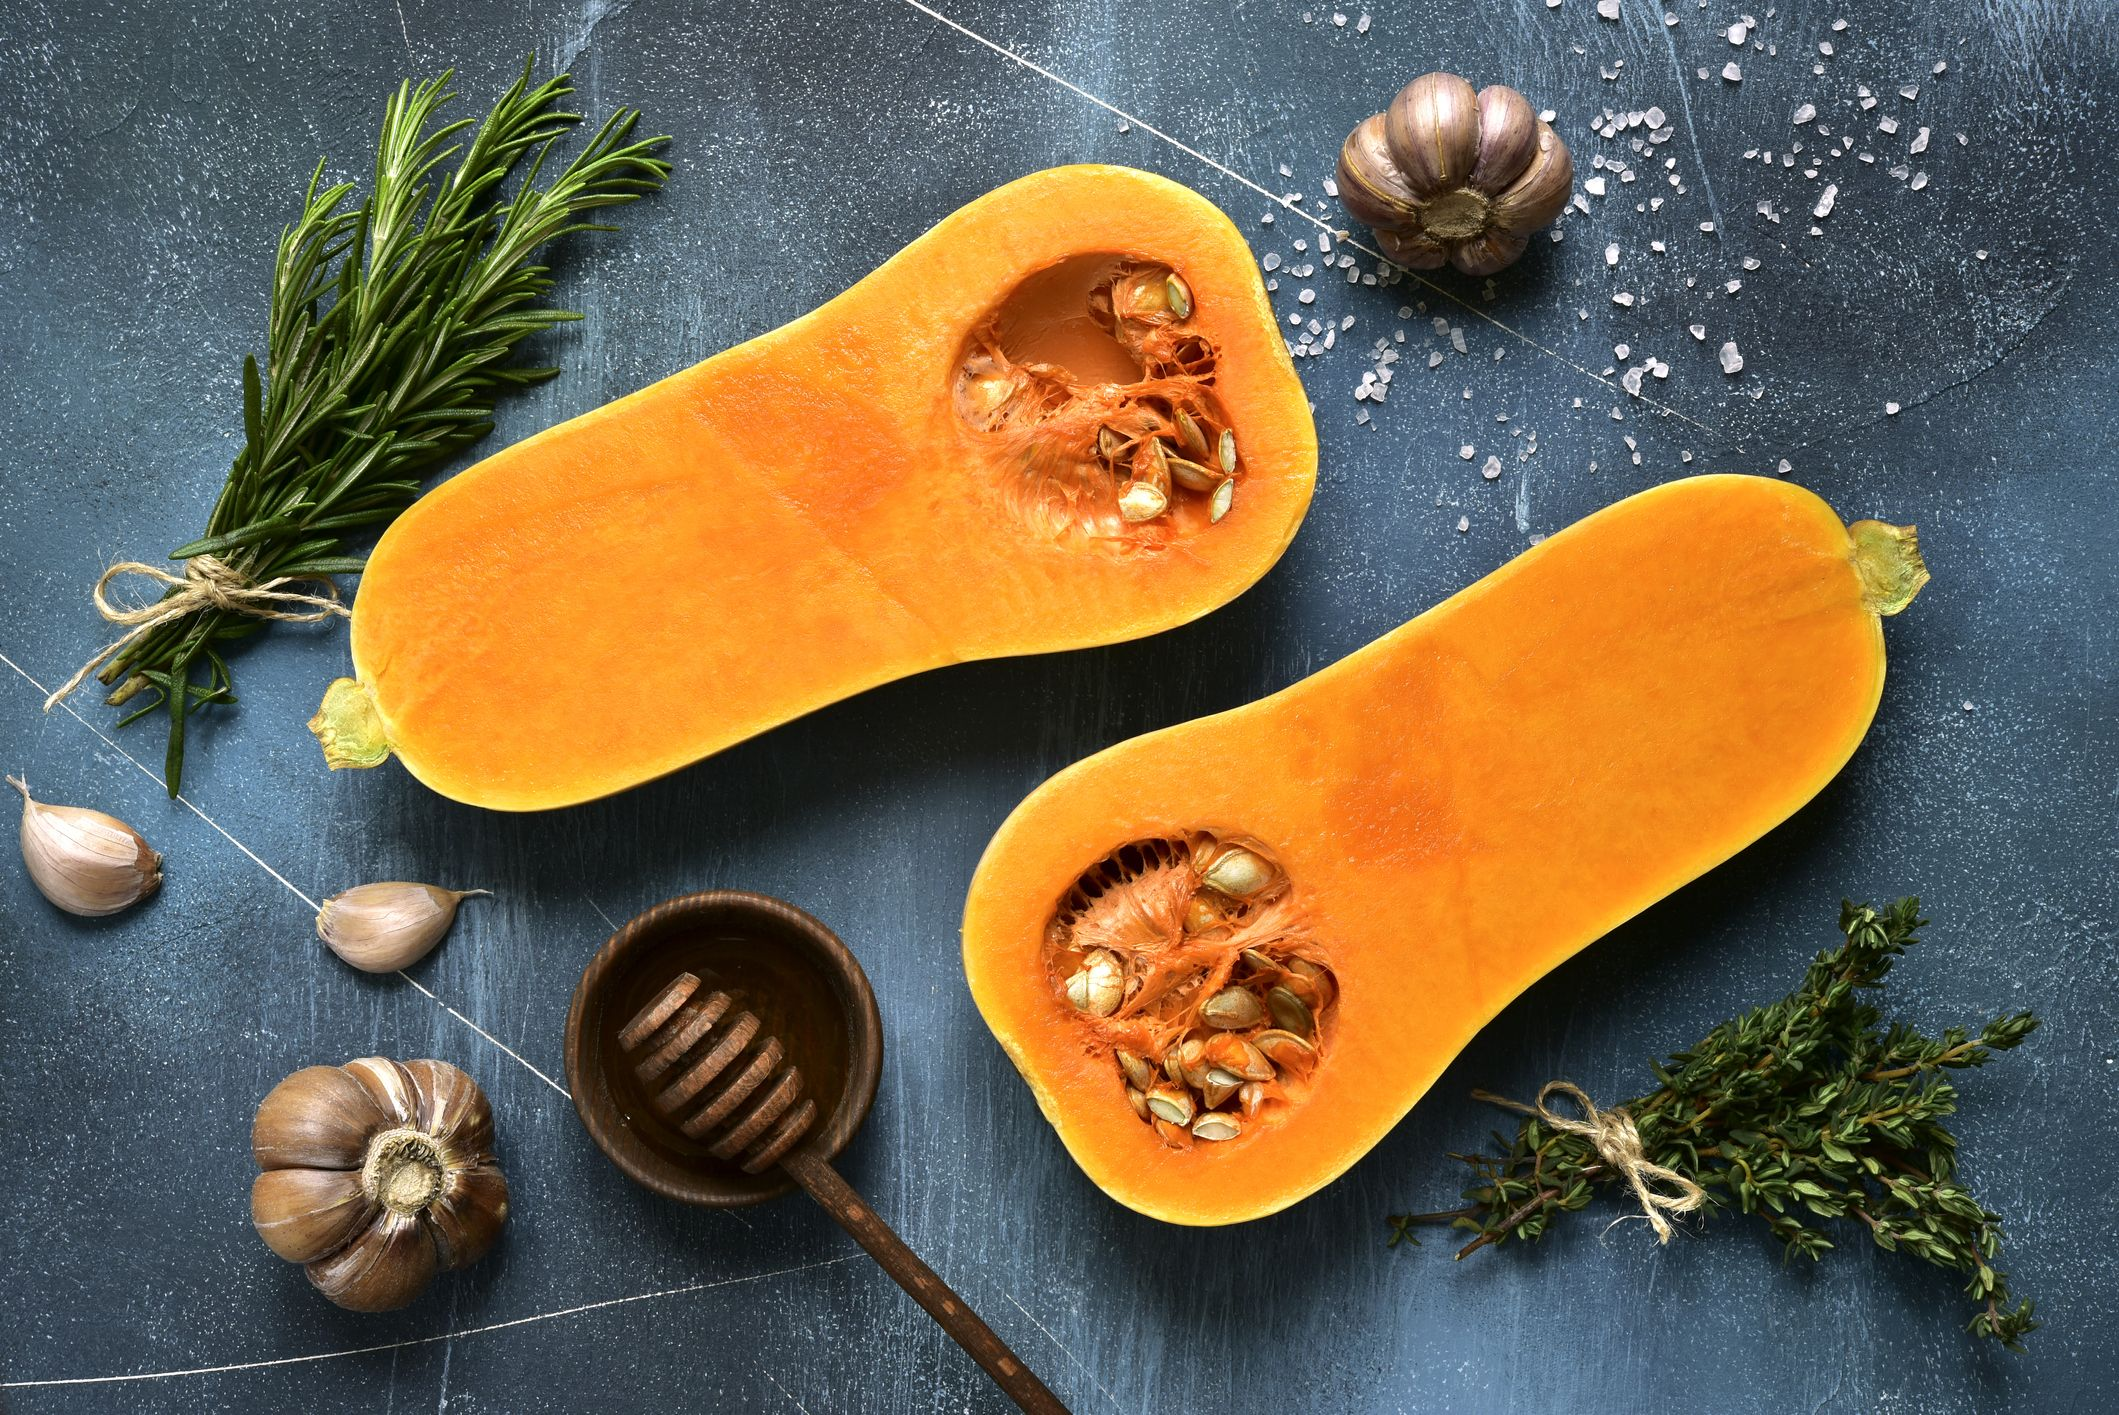 Is Butternut Squash Healthy? All the Nutritional Benefits of This Fall Superfood